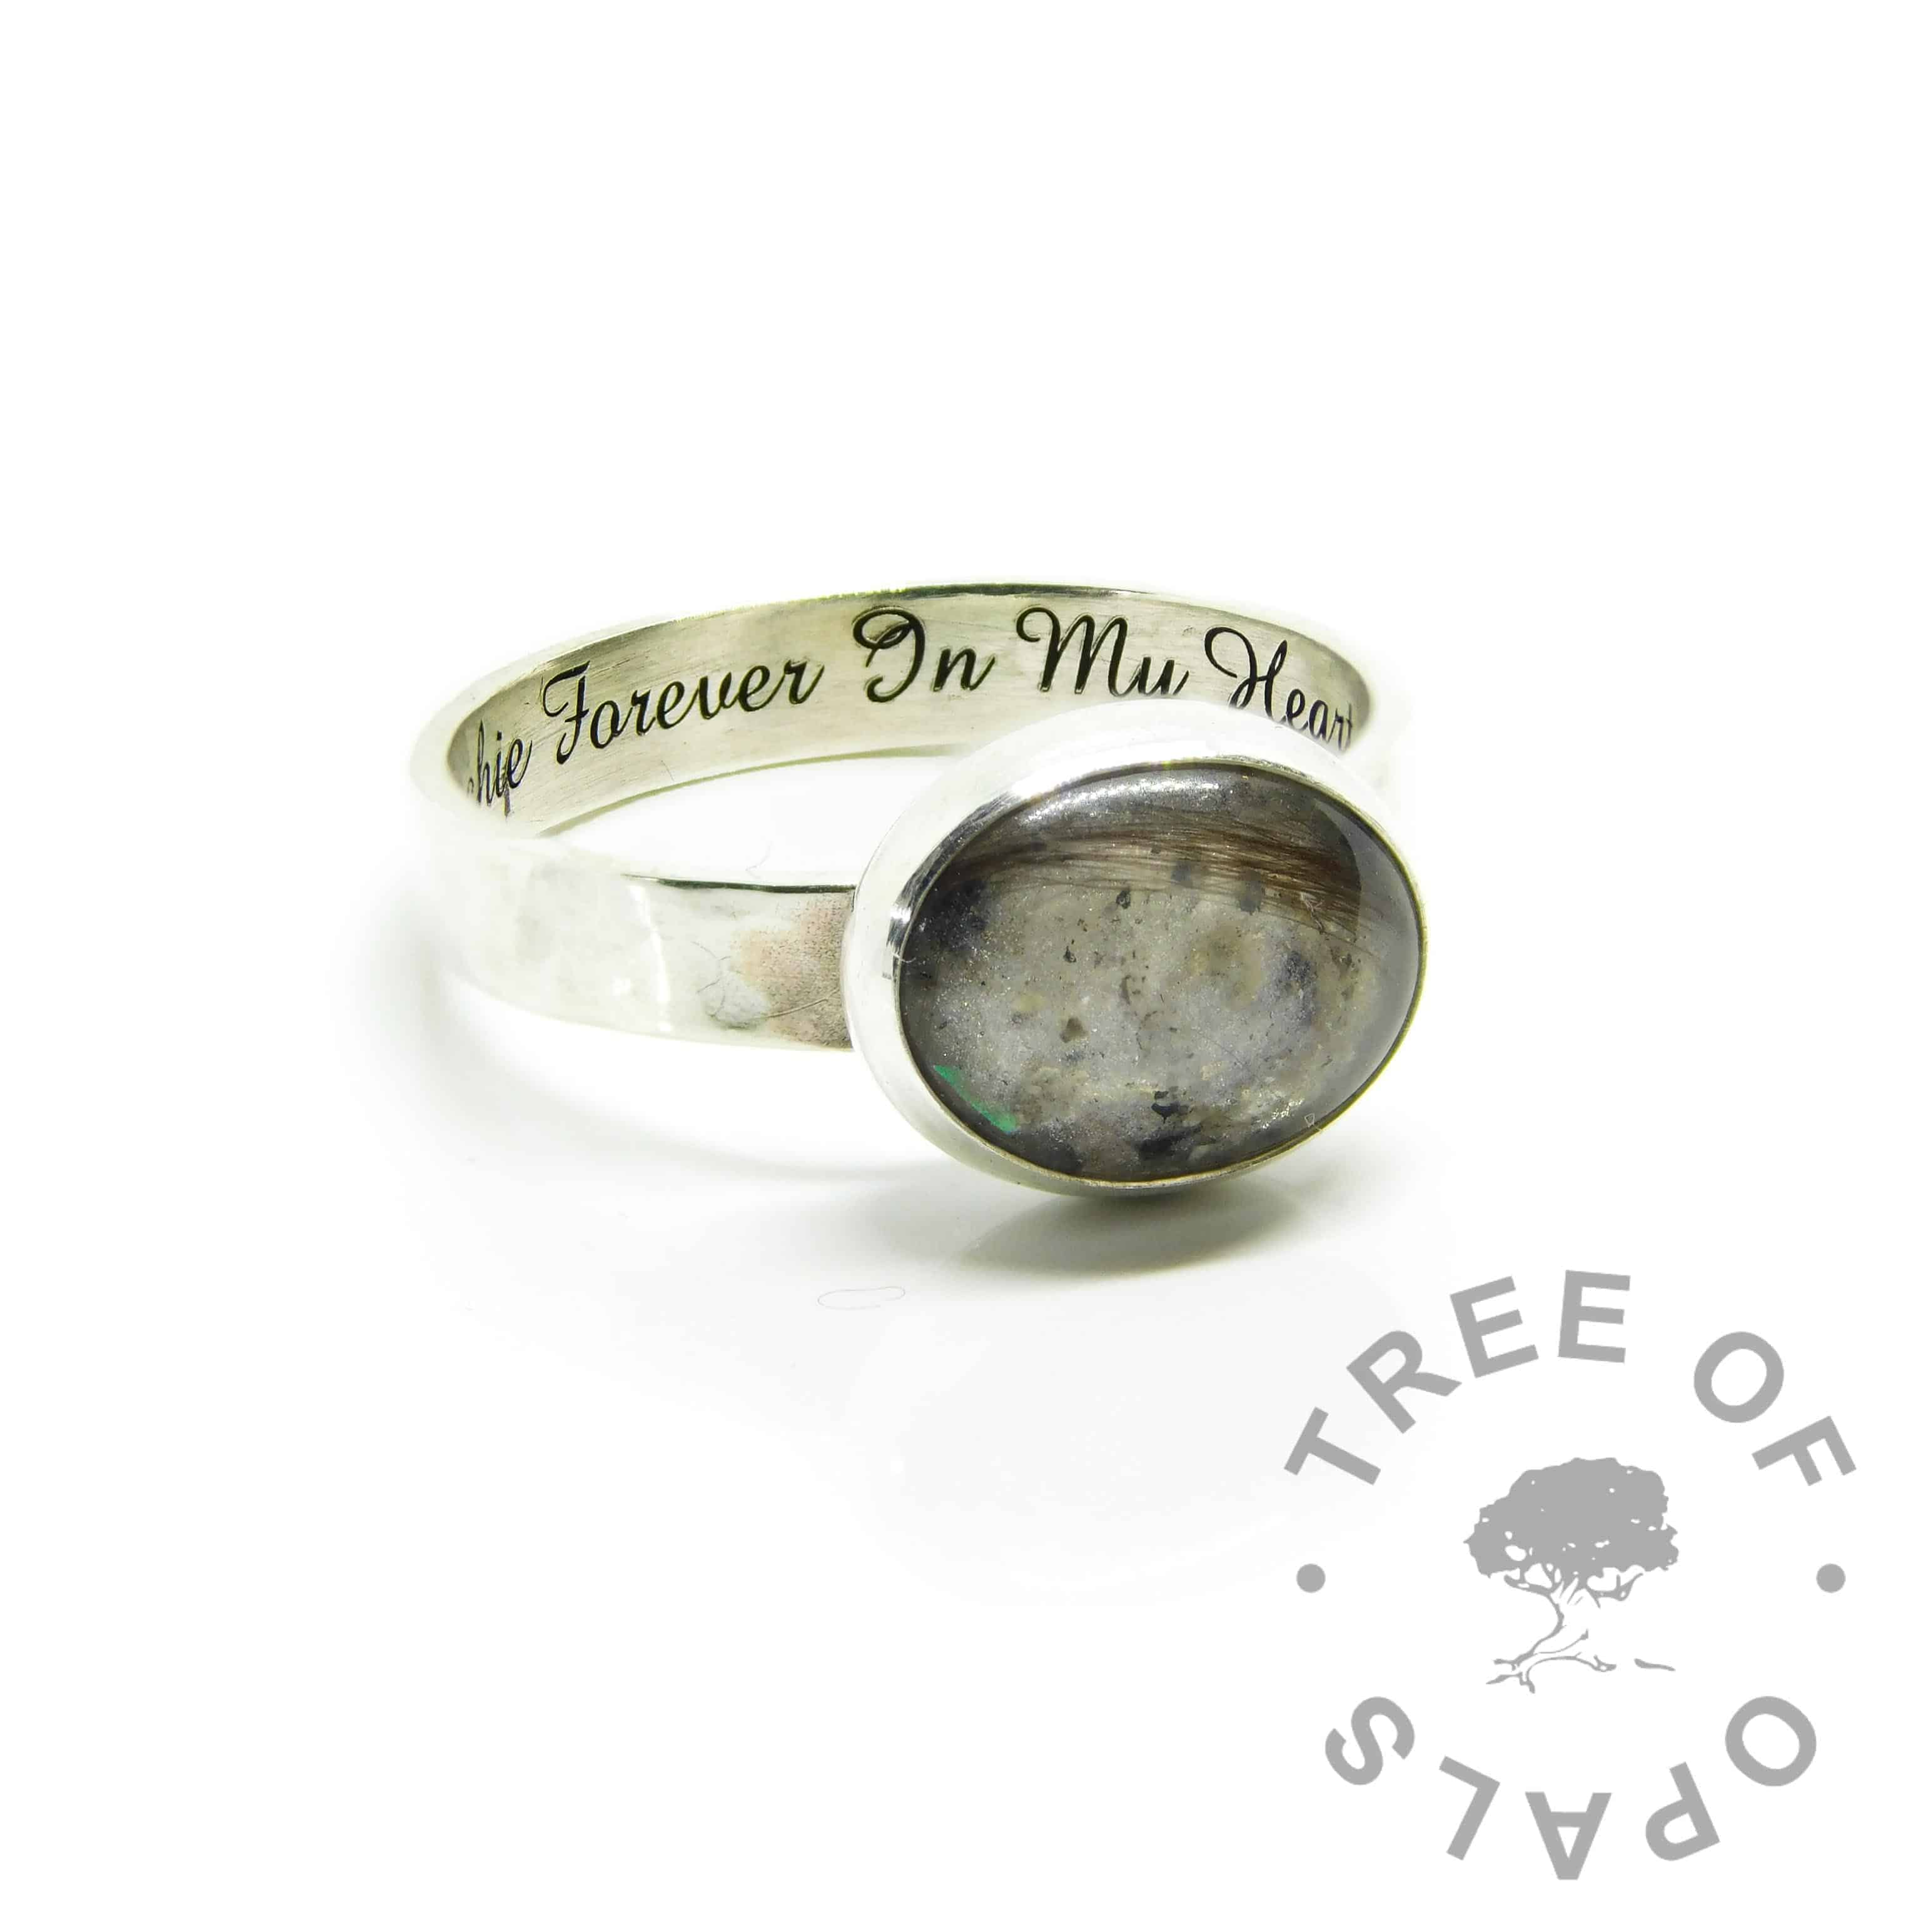 ashes and hair ring white, unicorn white resin sparkle mix, 3mm textured band ring setting, engraved inside in Amazone BT font